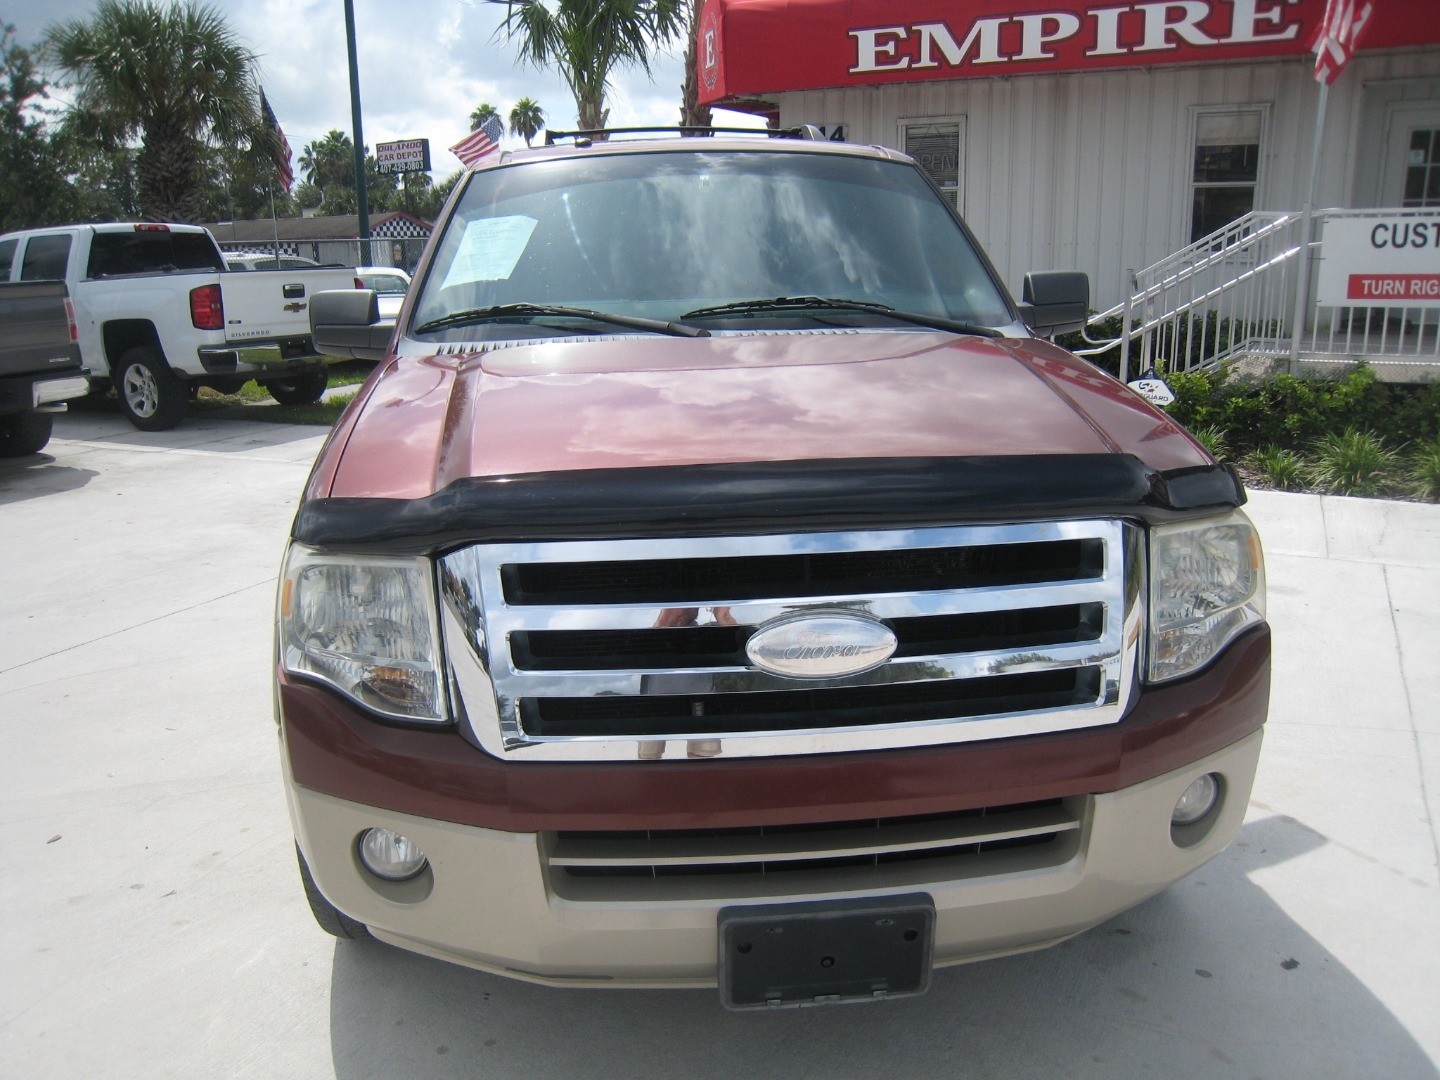 2008 ford expedition el king ranch 4x2 4dr suv empire automotive group dealership in orlando 2008 ford expedition el king ranch 4x2 4dr suv